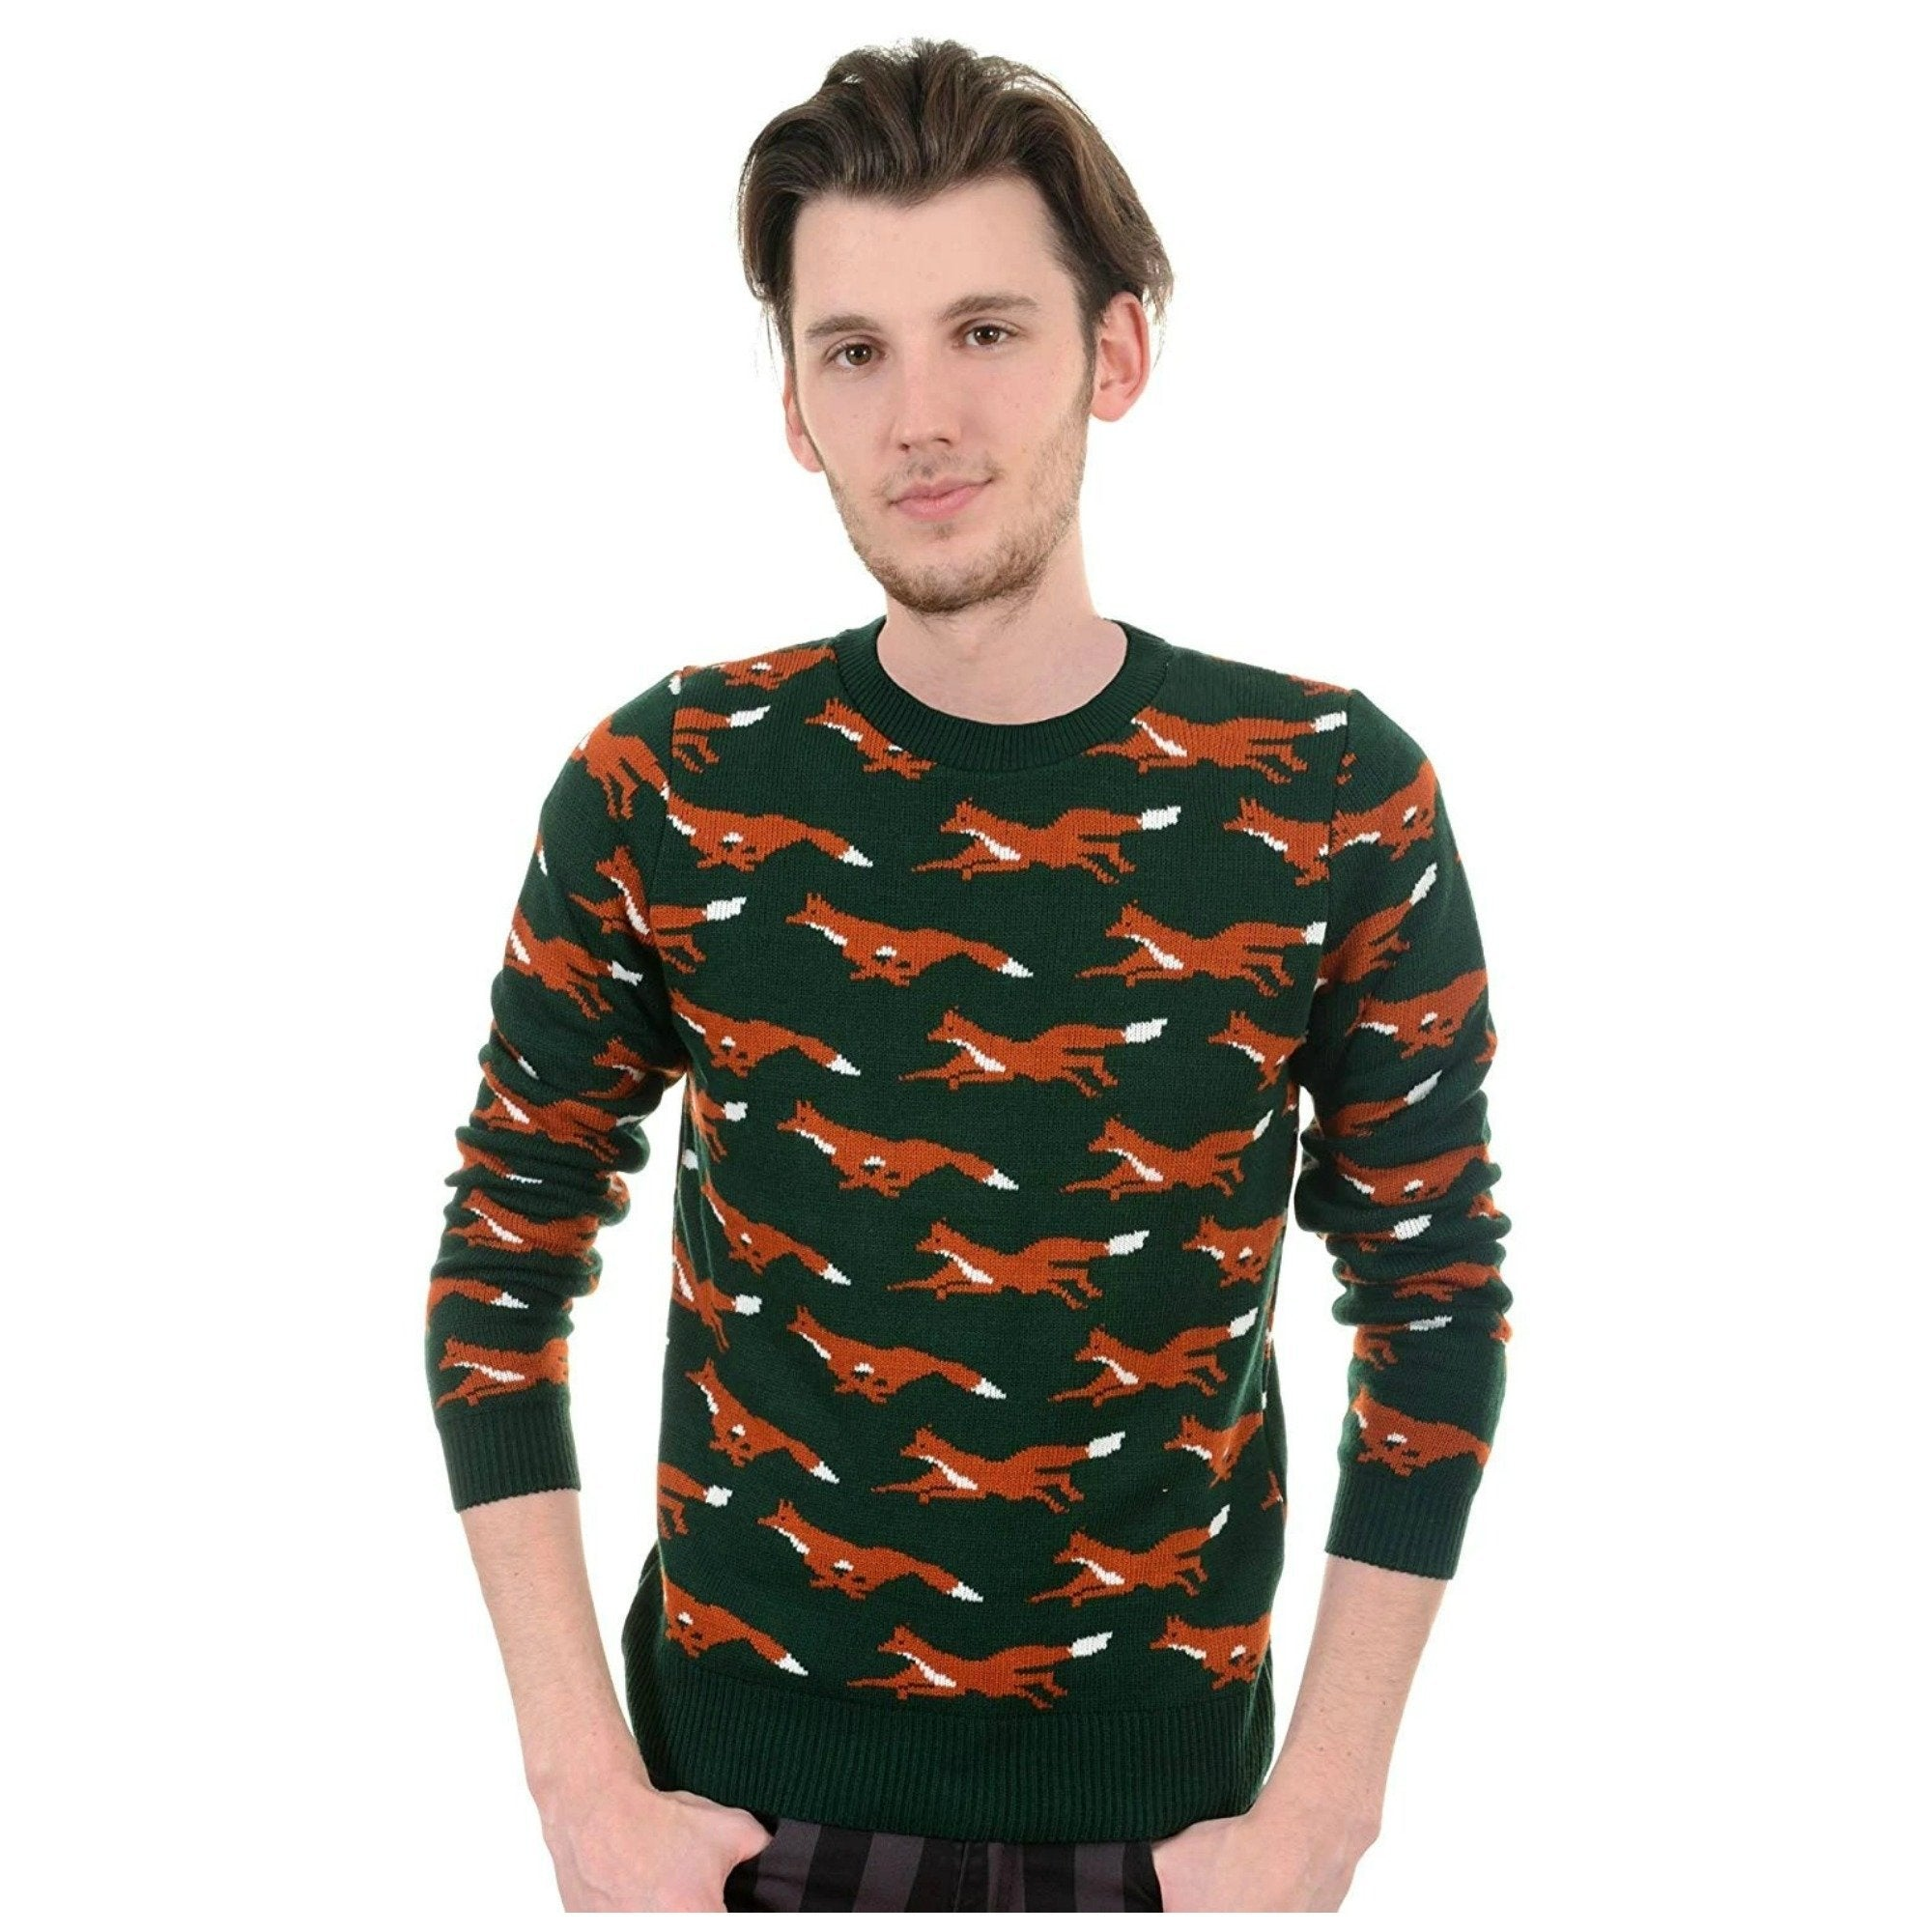 Running Fox Jumper By Run And Fly - Minimum Mouse